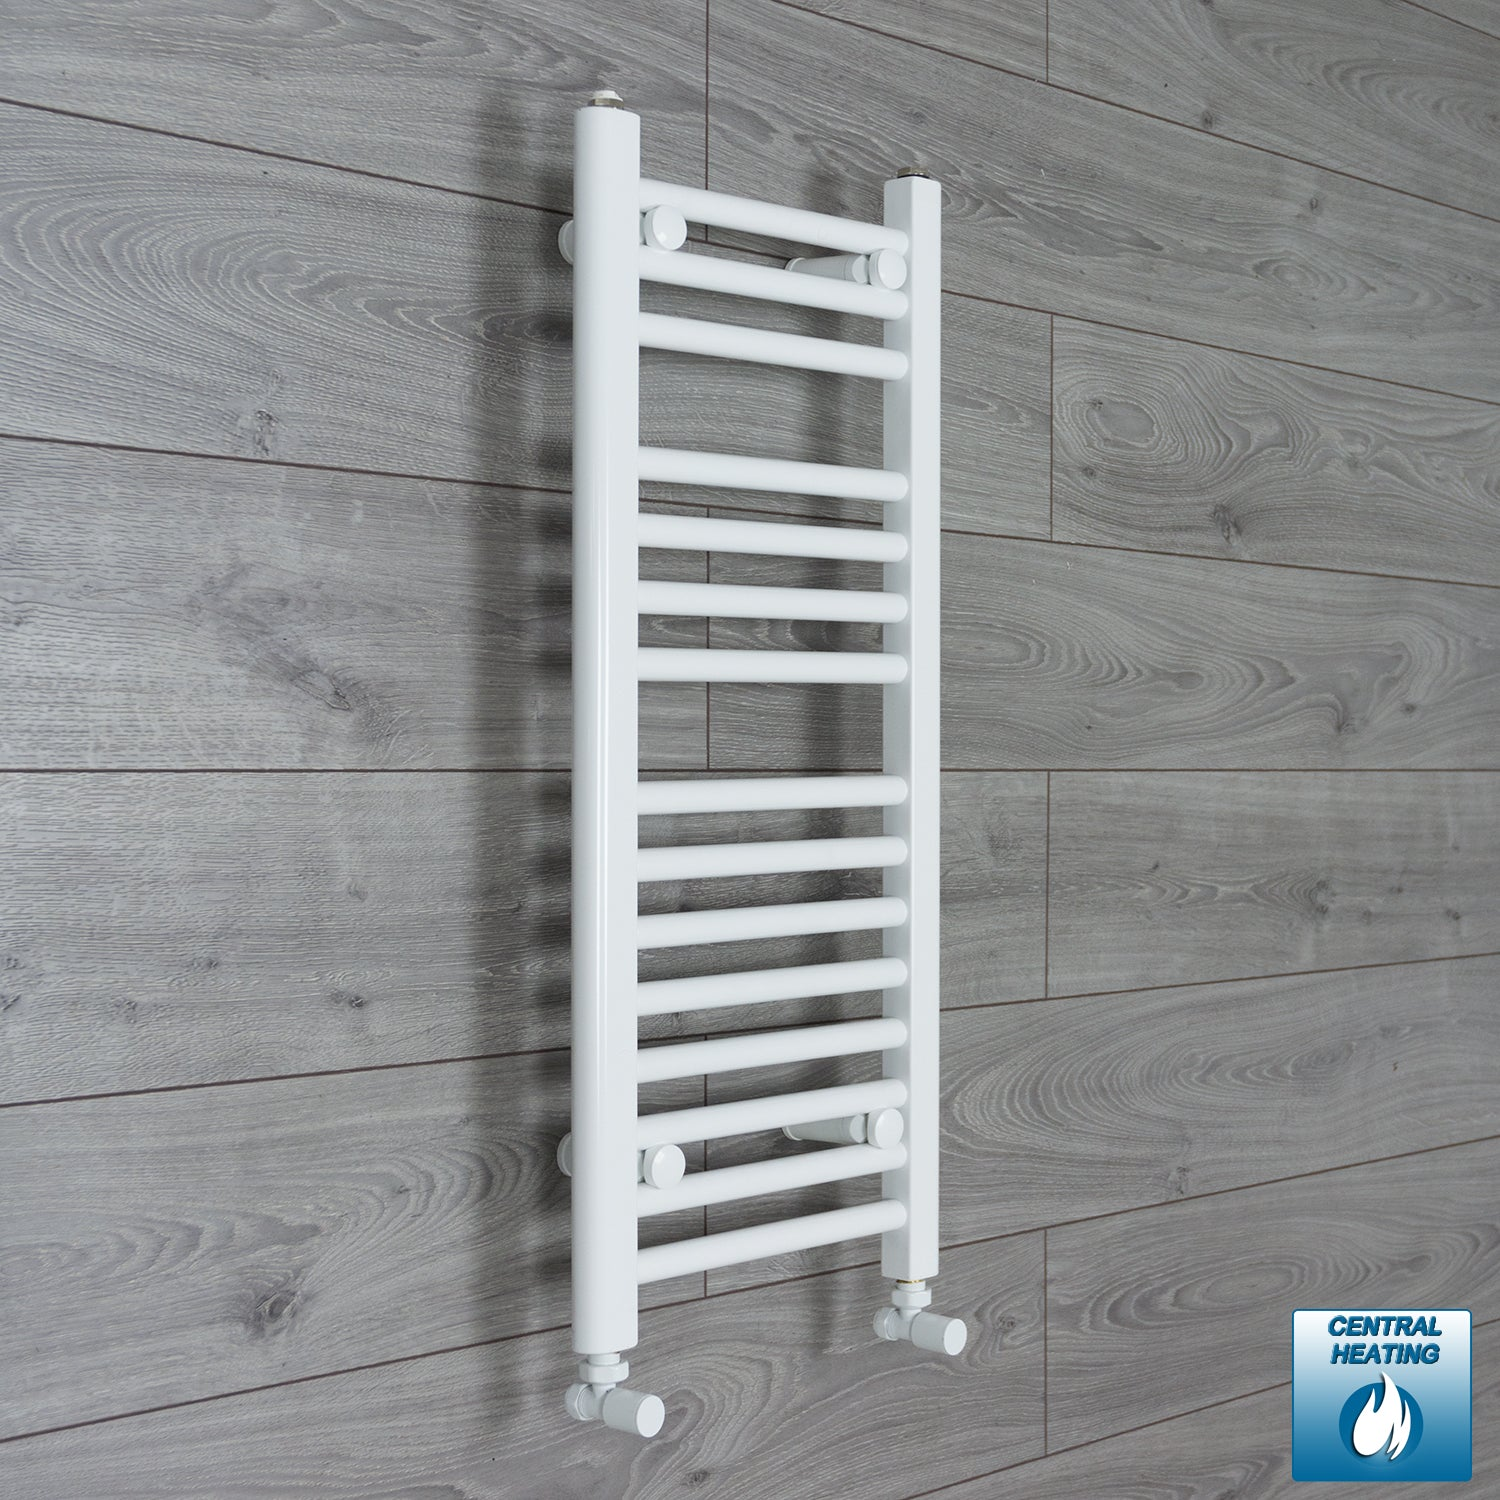 350mm Wide 800mm High White Towel Rail Radiator With Angled Valve